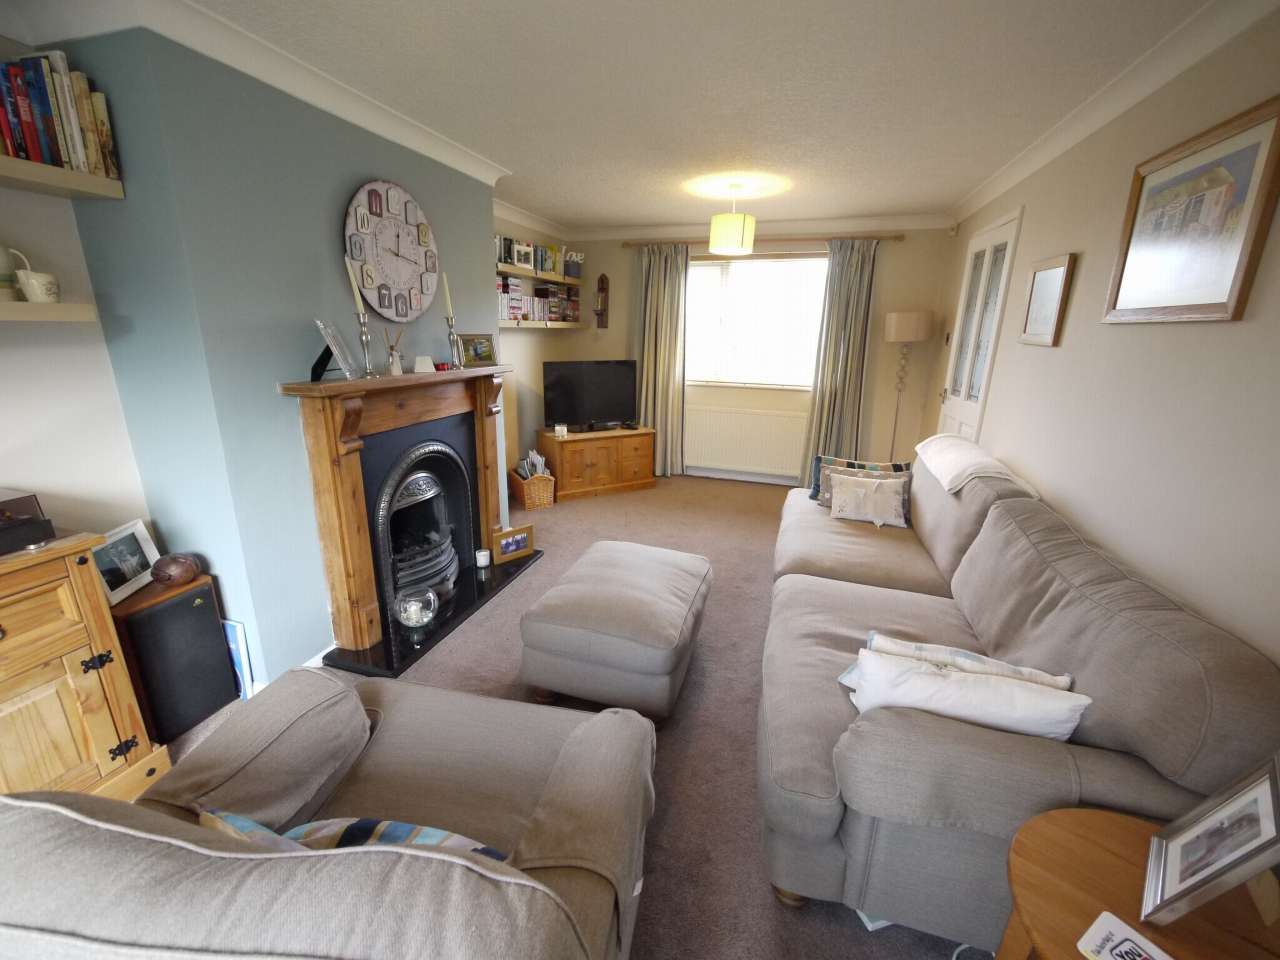 4 bedroom detached house For Sale in Brighouse - Photograph 3.